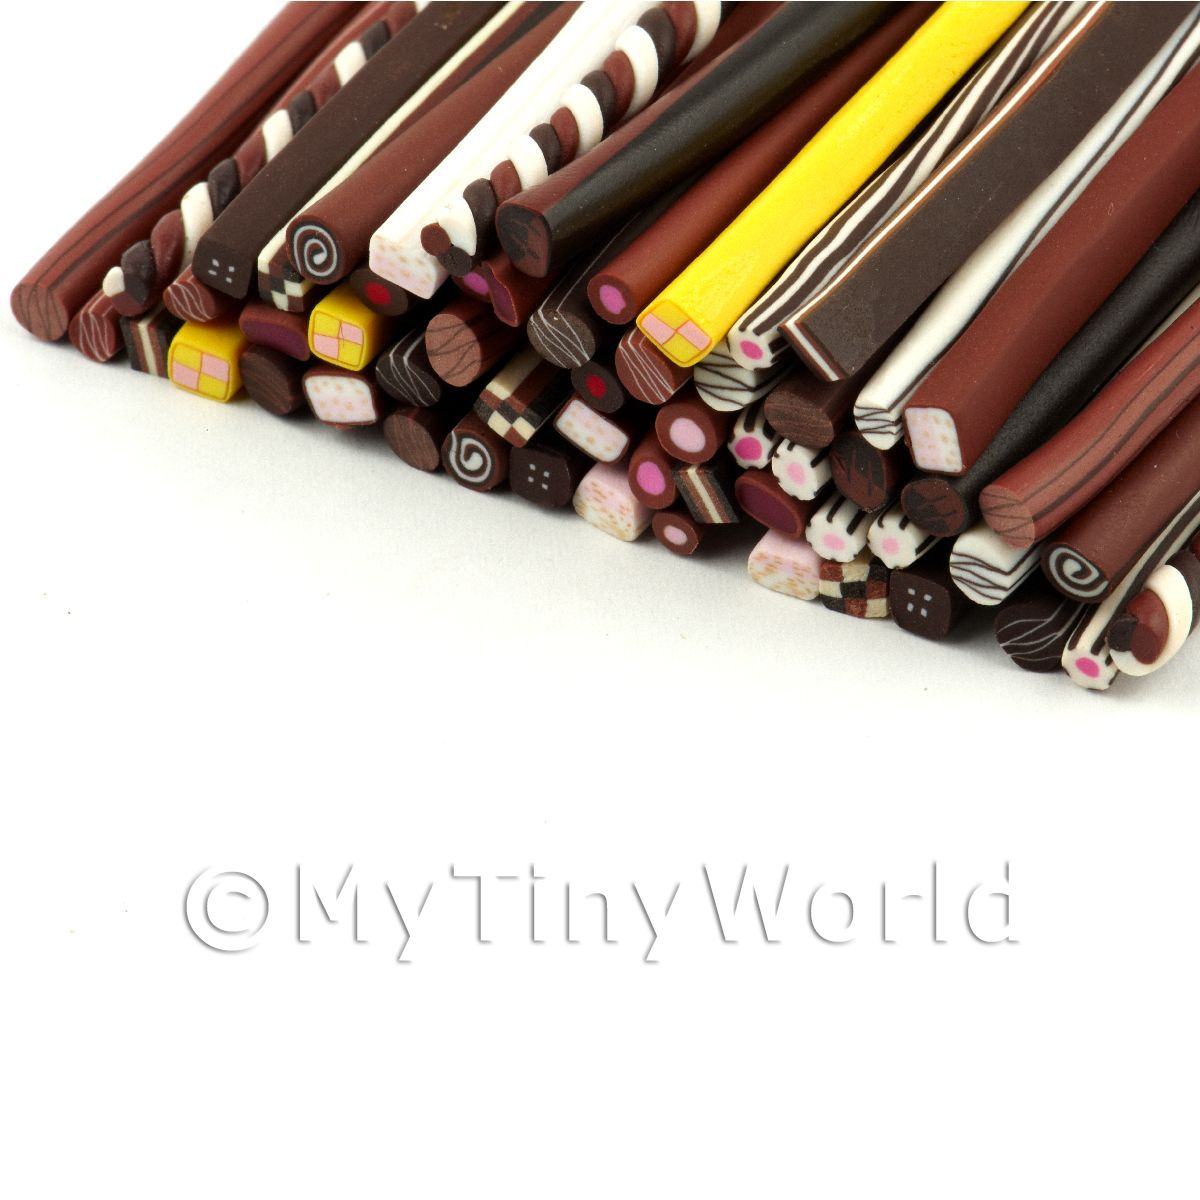 60 Mixed Chocolate And Sweet Canes - Nail Art (11NCST1)